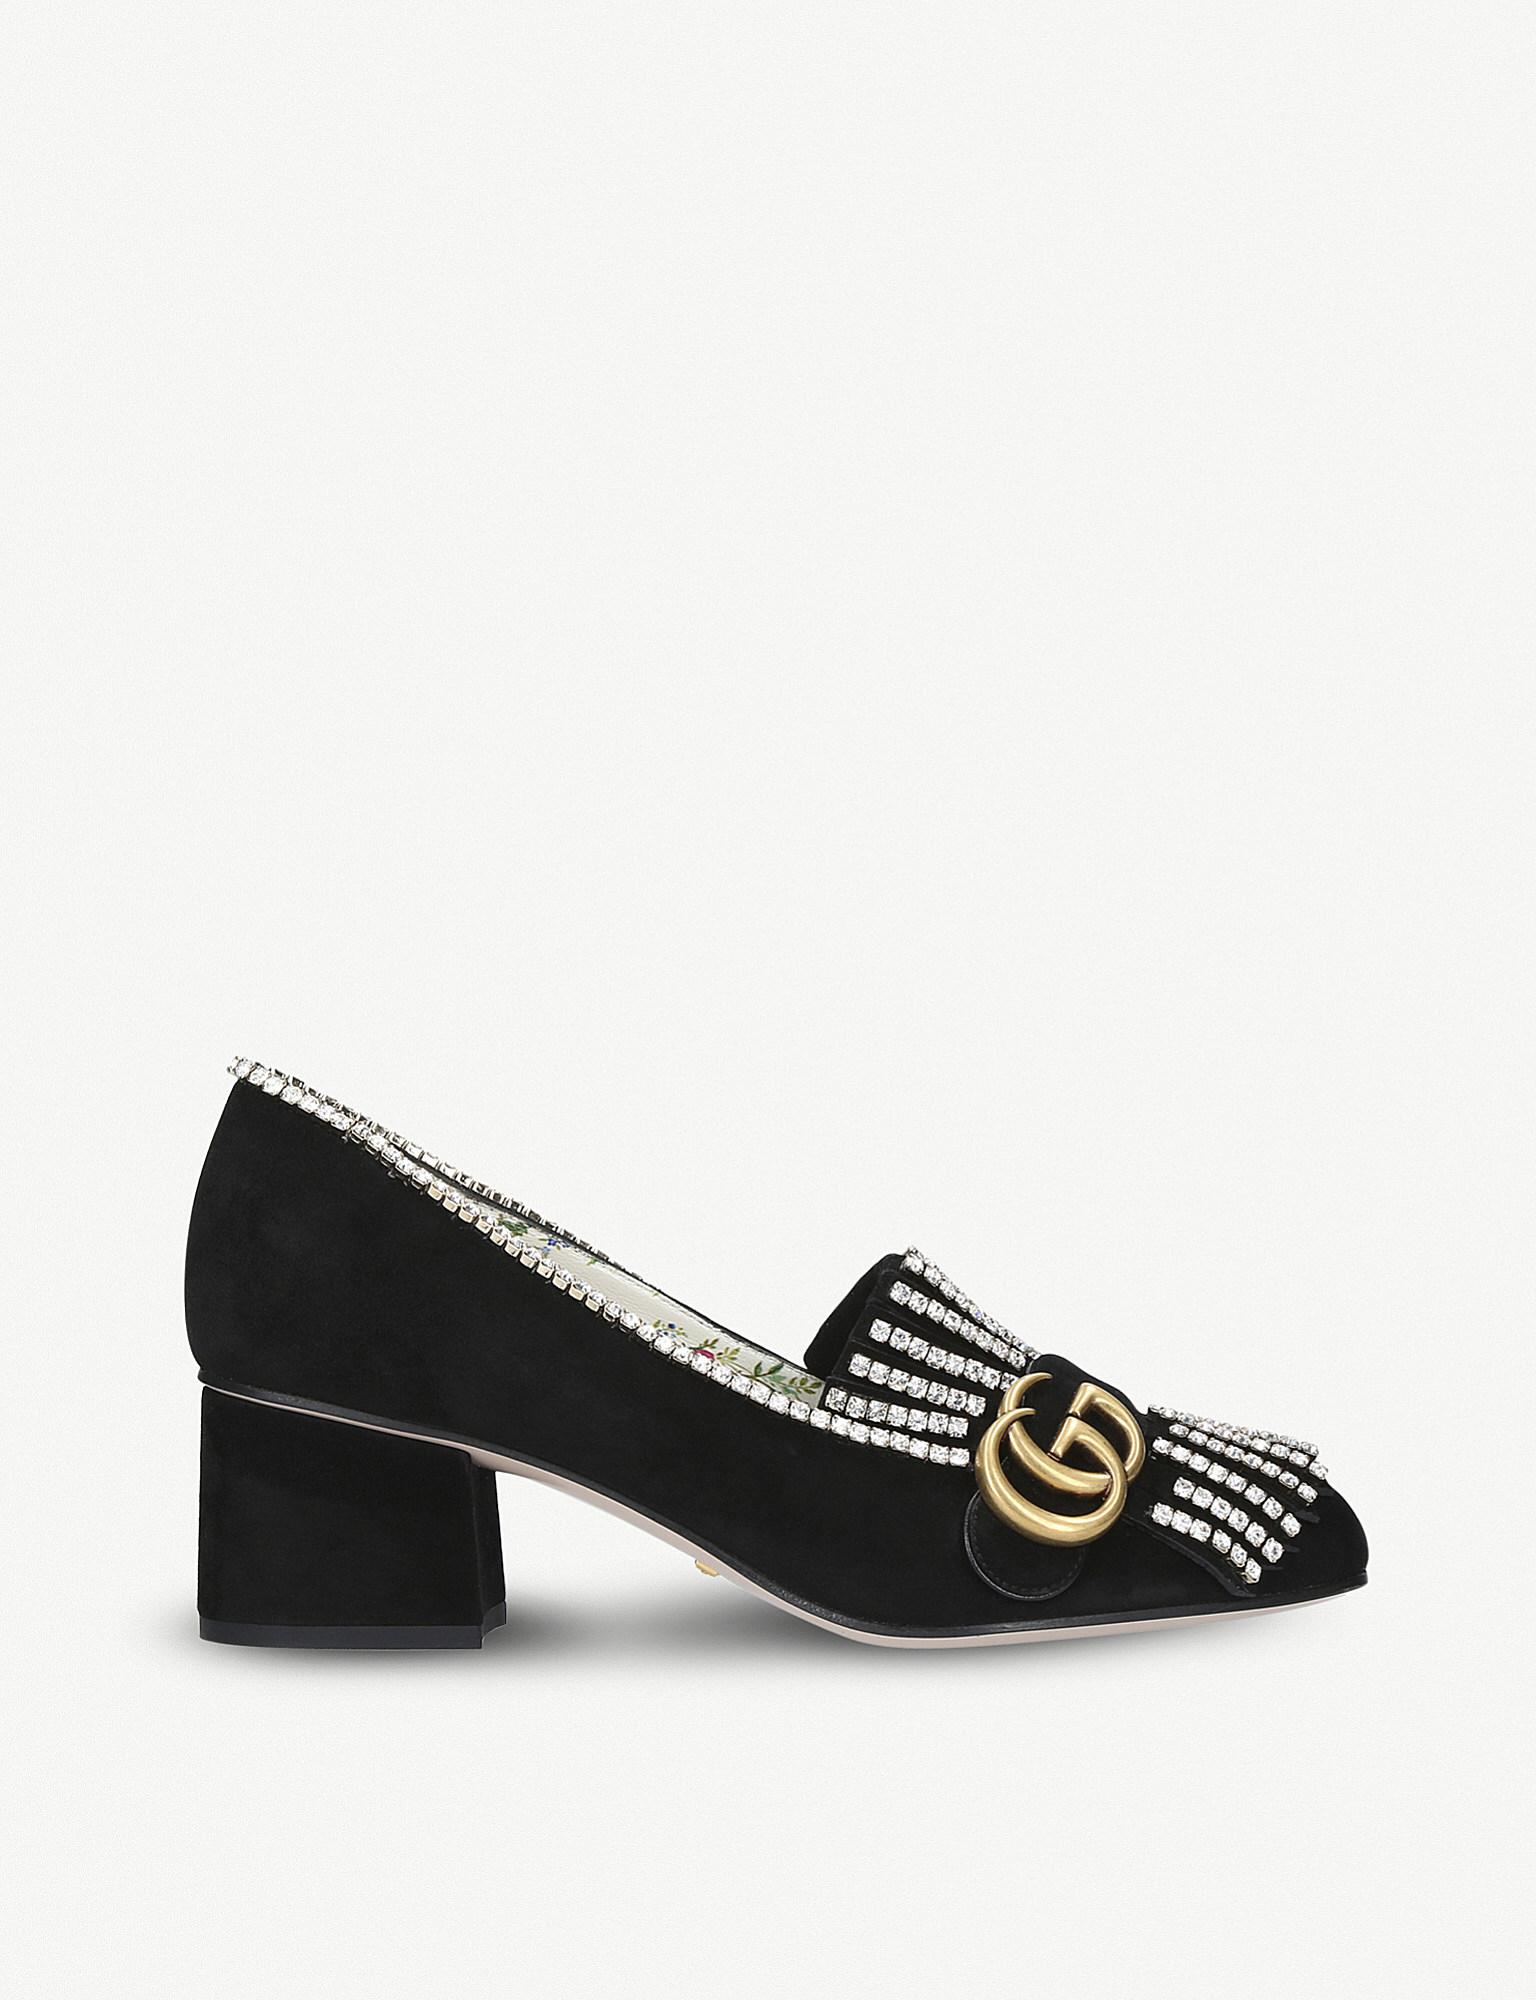 b9a7da42cde Gucci Marmont 55 Crystal-embellished Suede Loafers in Black - Lyst